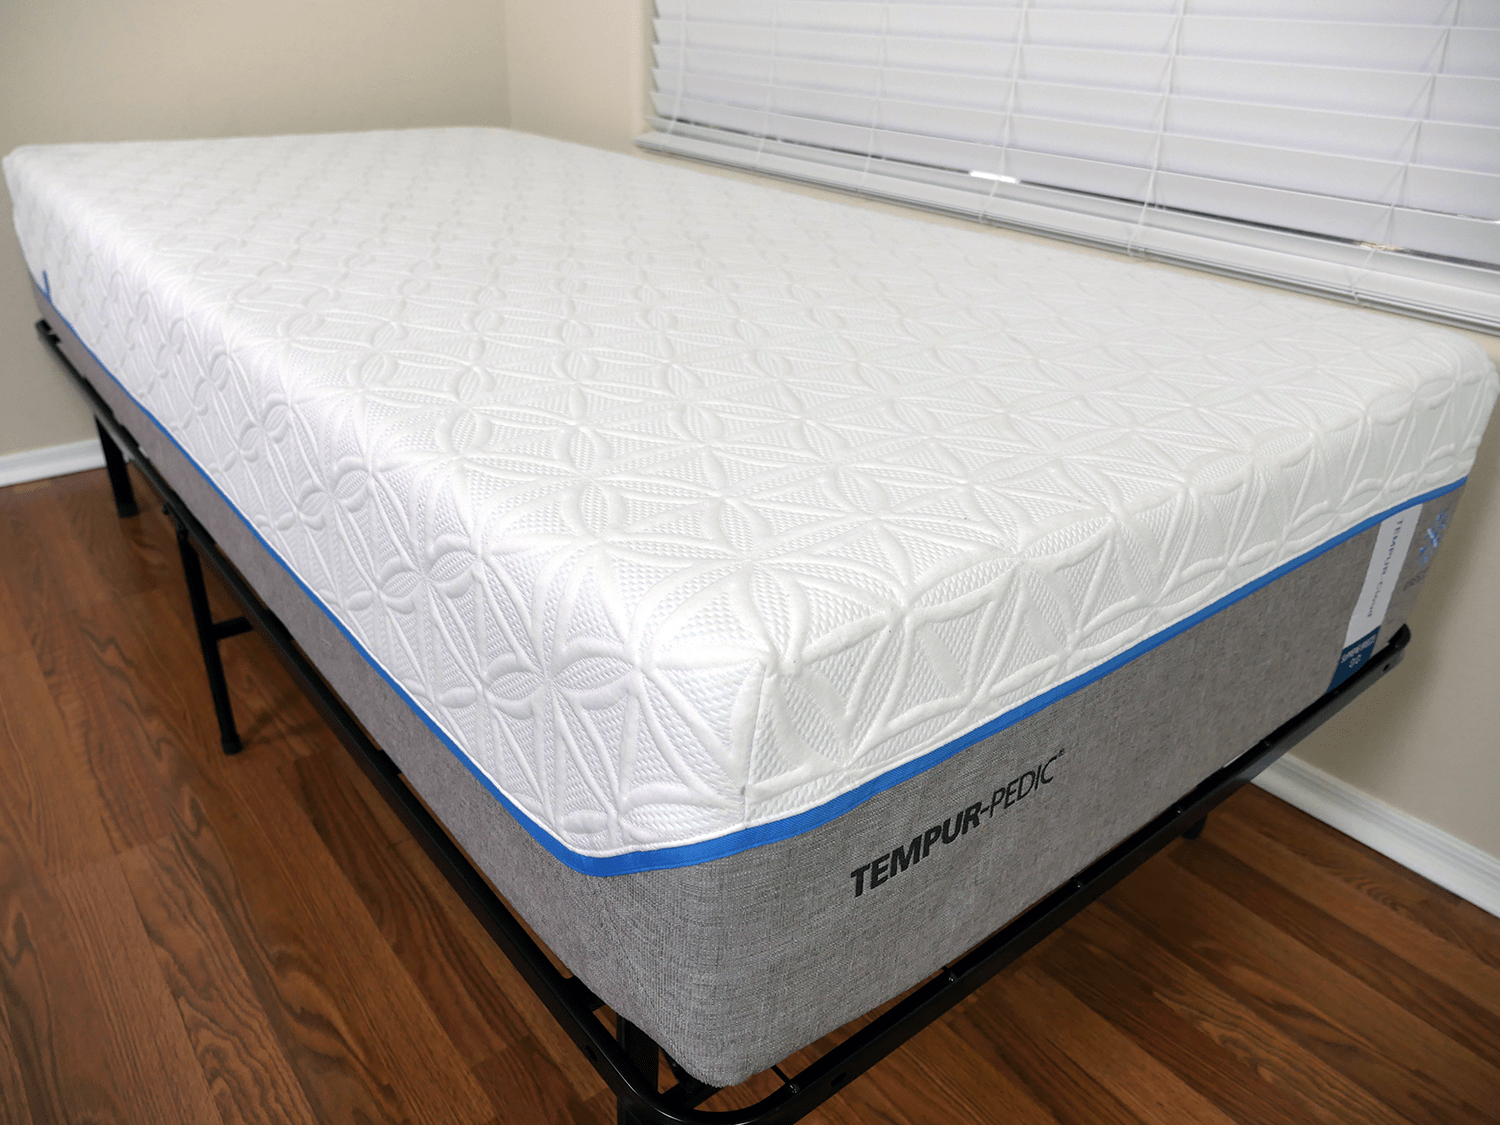 tempurpedic-cloud-supreme-breeze-mattress-cover-2 Amerisleep vs Tempurpedic Mattress Review